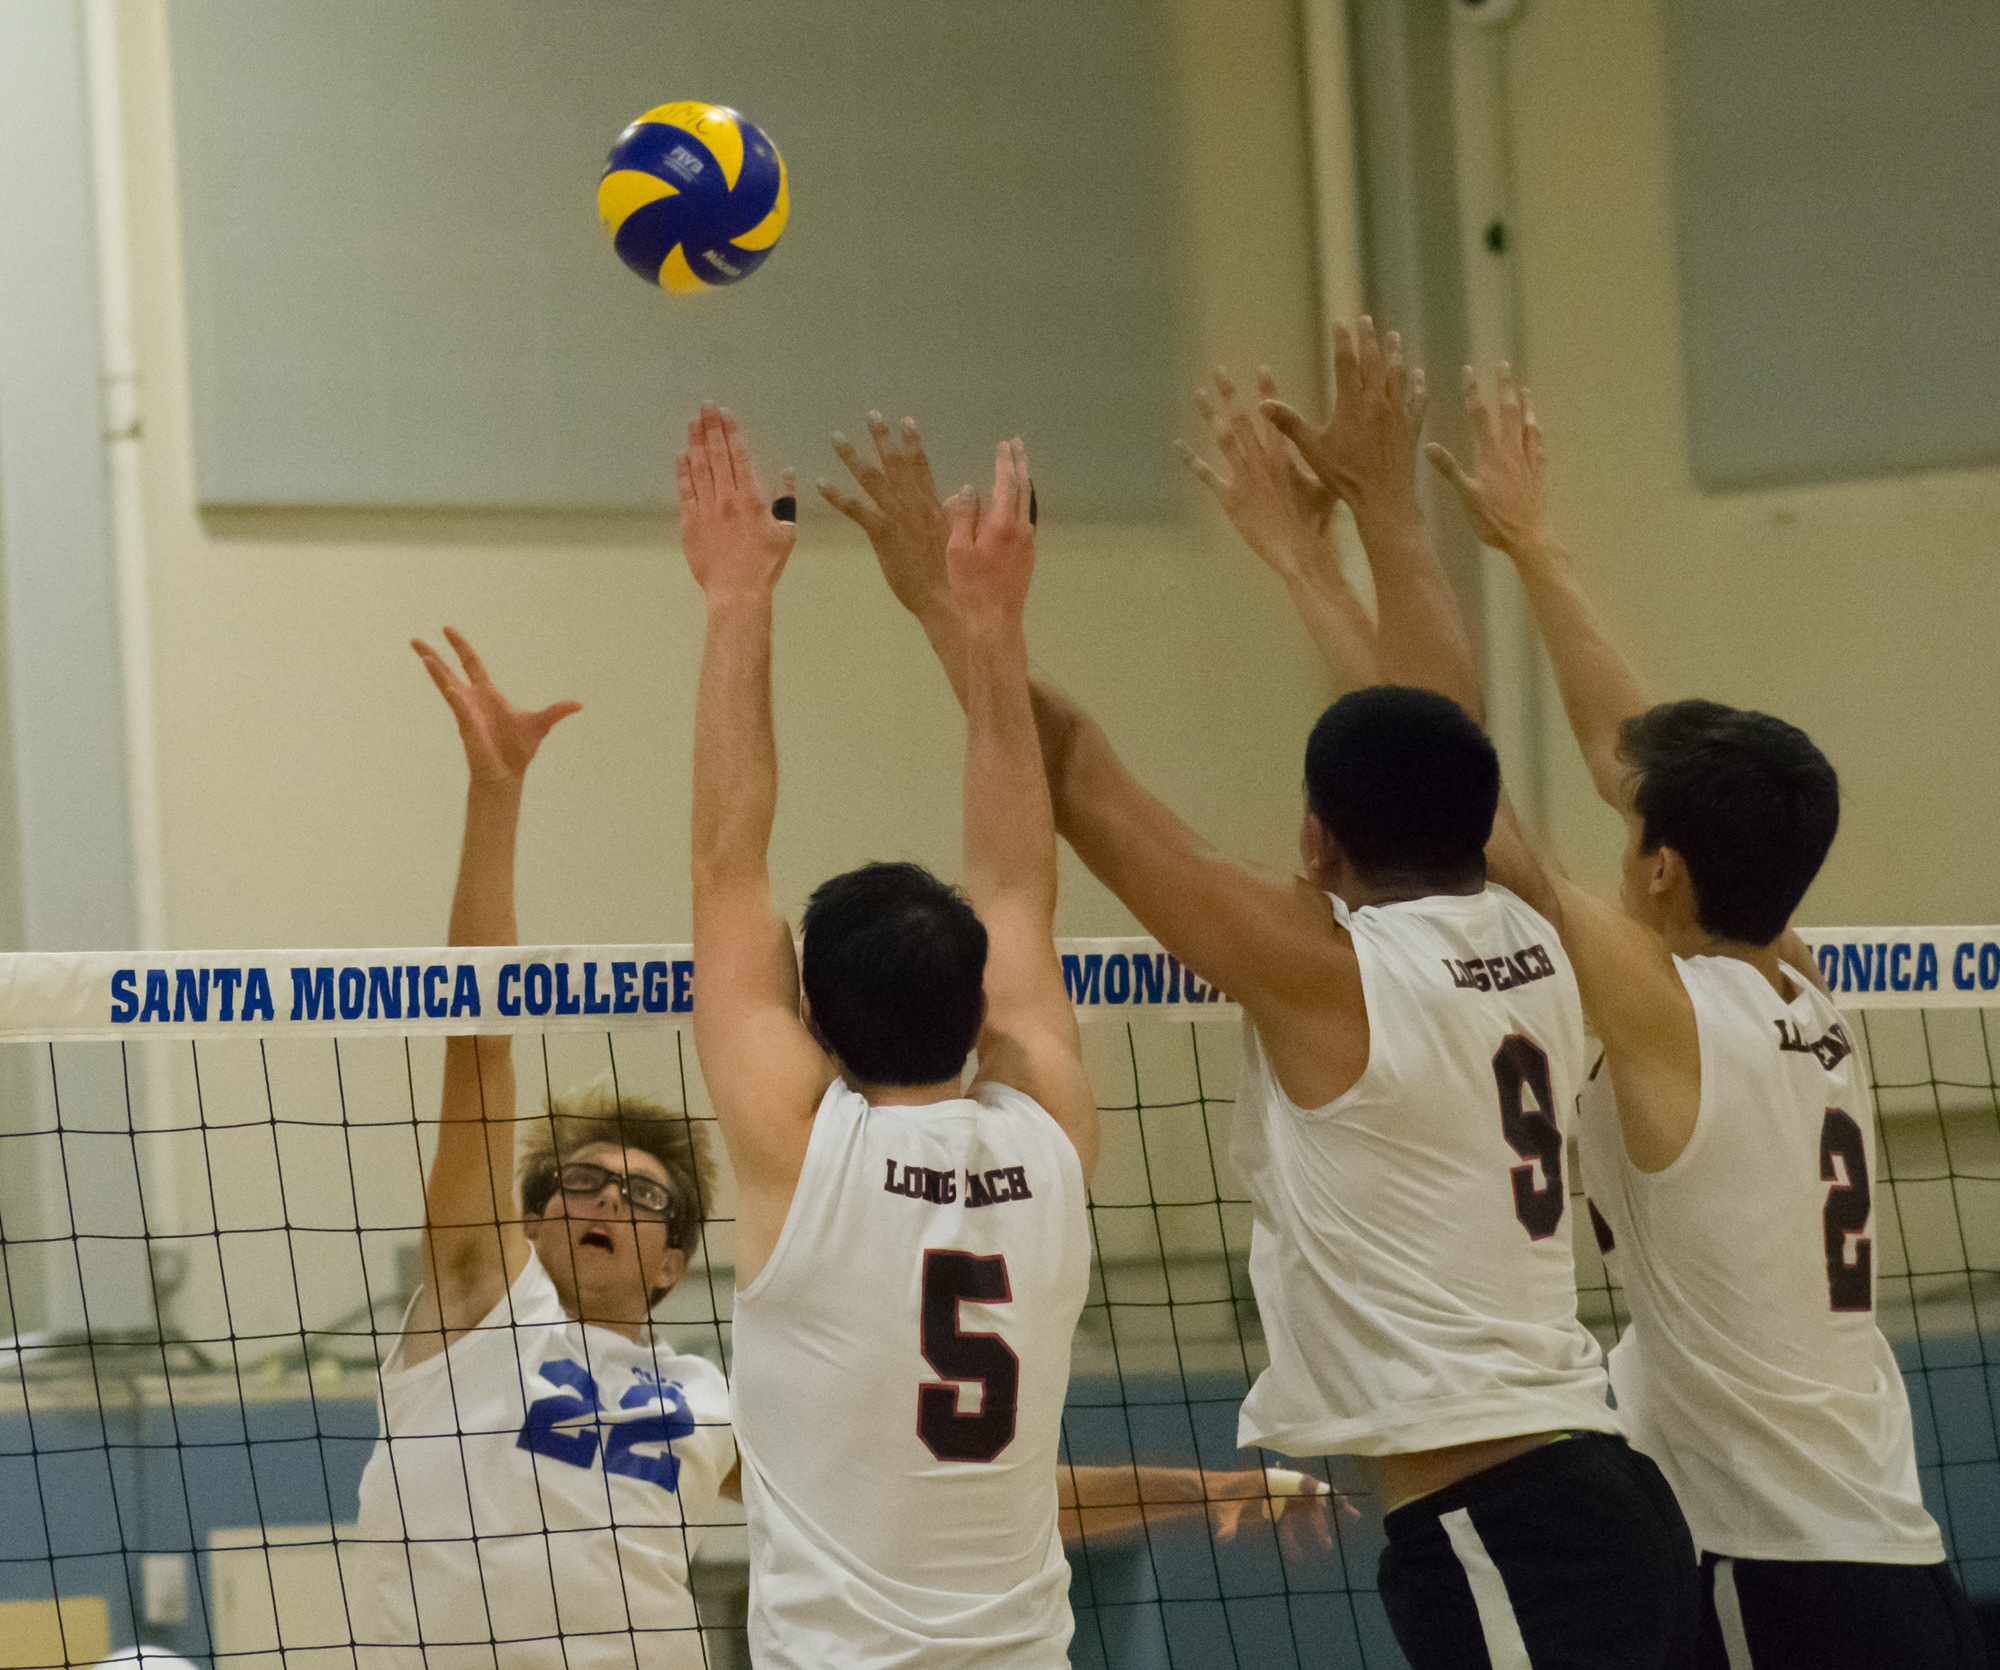 Santa Monica Corsairs sophomore and outside hitter Stanton Smith (#22) attempts to defend against the Long Beach City College Vikings during their final home game of the season on Wednesday, April 12, 2018 in the Santa Monica College gym at Santa Monica, California. The game ended in a 3-1 loss for the Corsairs, giving them a 7-7 overall rating for the season with one game left. (Ethan Lauren/Corsair Photo)